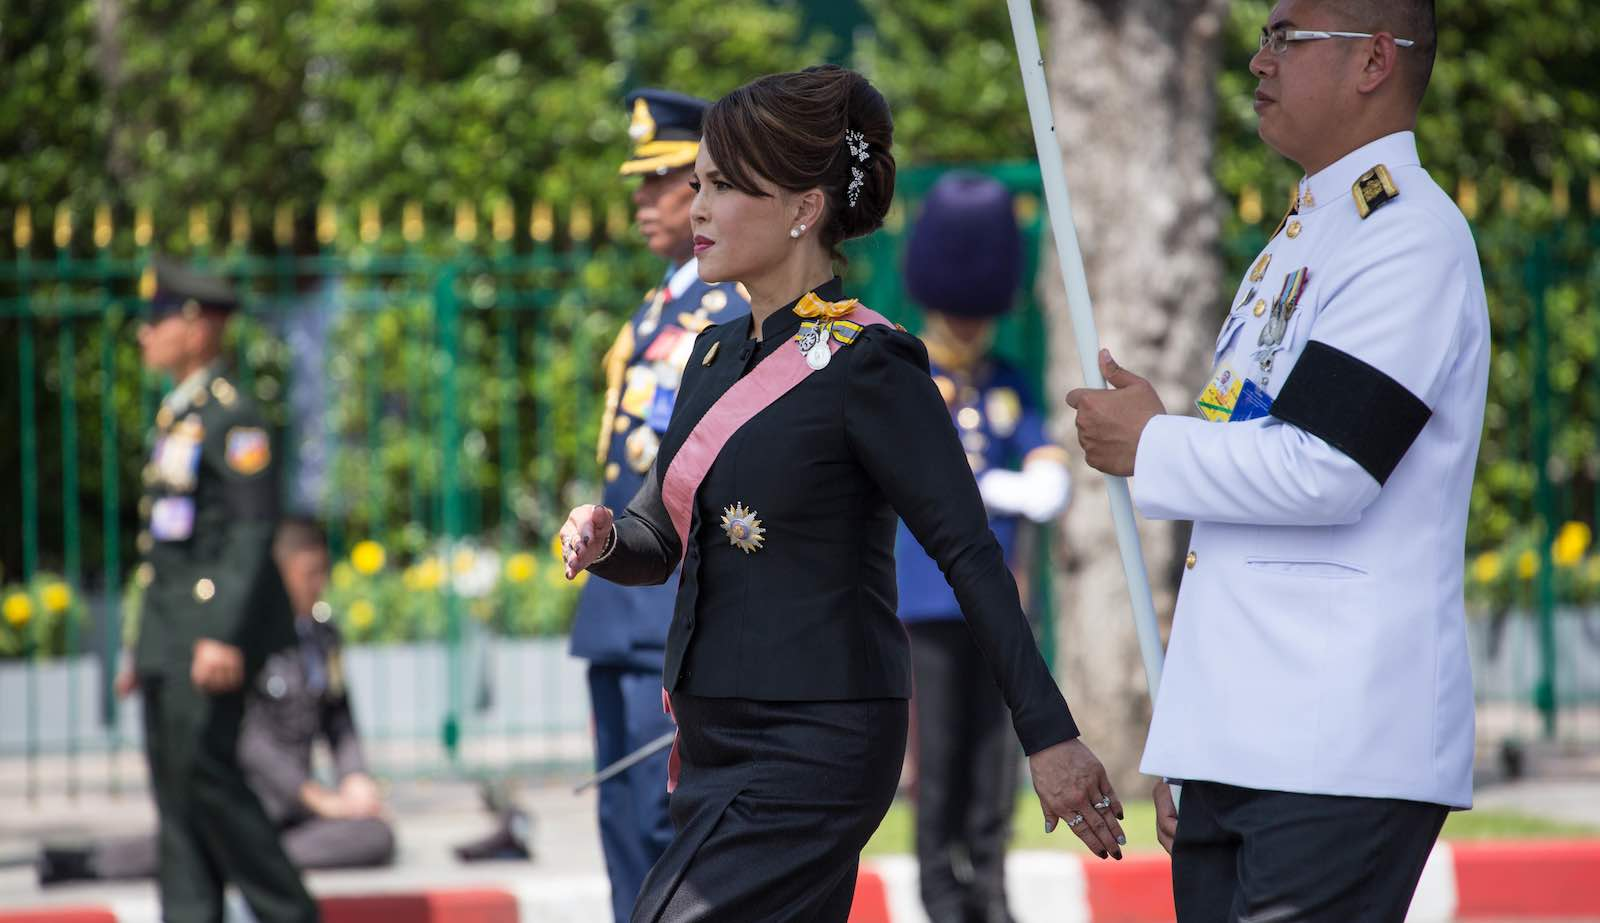 Thailand's Princess Ubolratana, here in 2017, was announced on Friday as a surprise candidate for prime minister (Photo: Guillaume Payen via Getty)